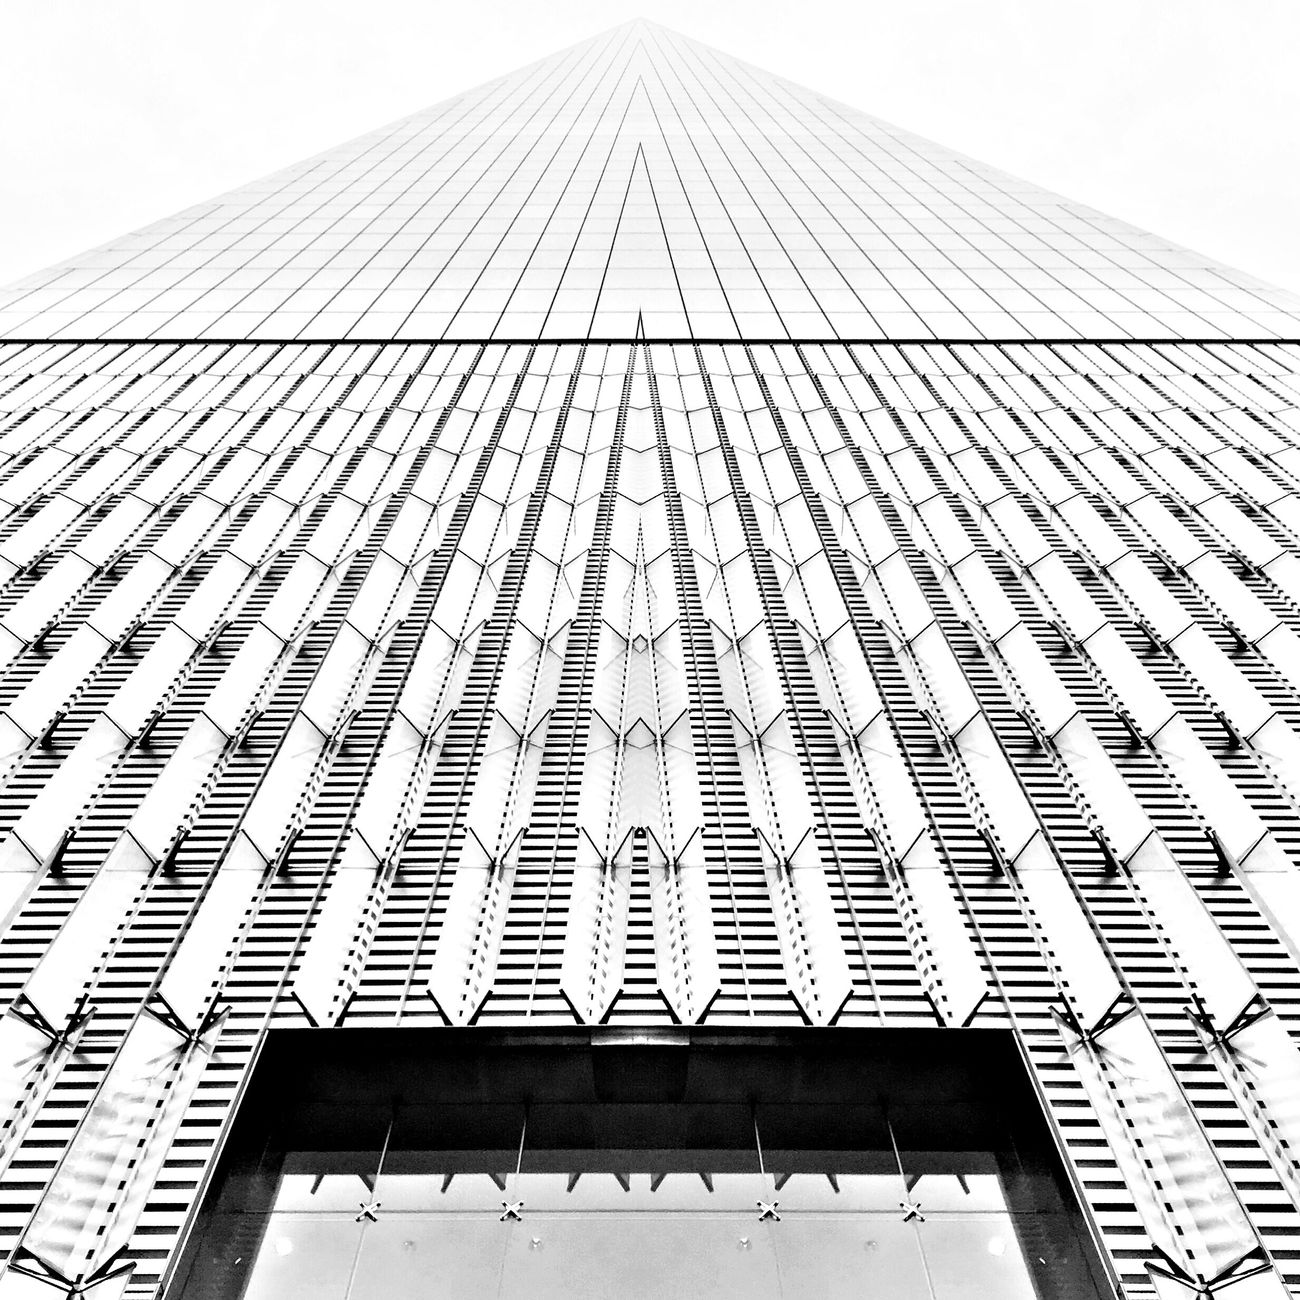 Louvers Architecture Building Exterior Skyscraper City IPhoneography Blackandwhite Symmetry New York